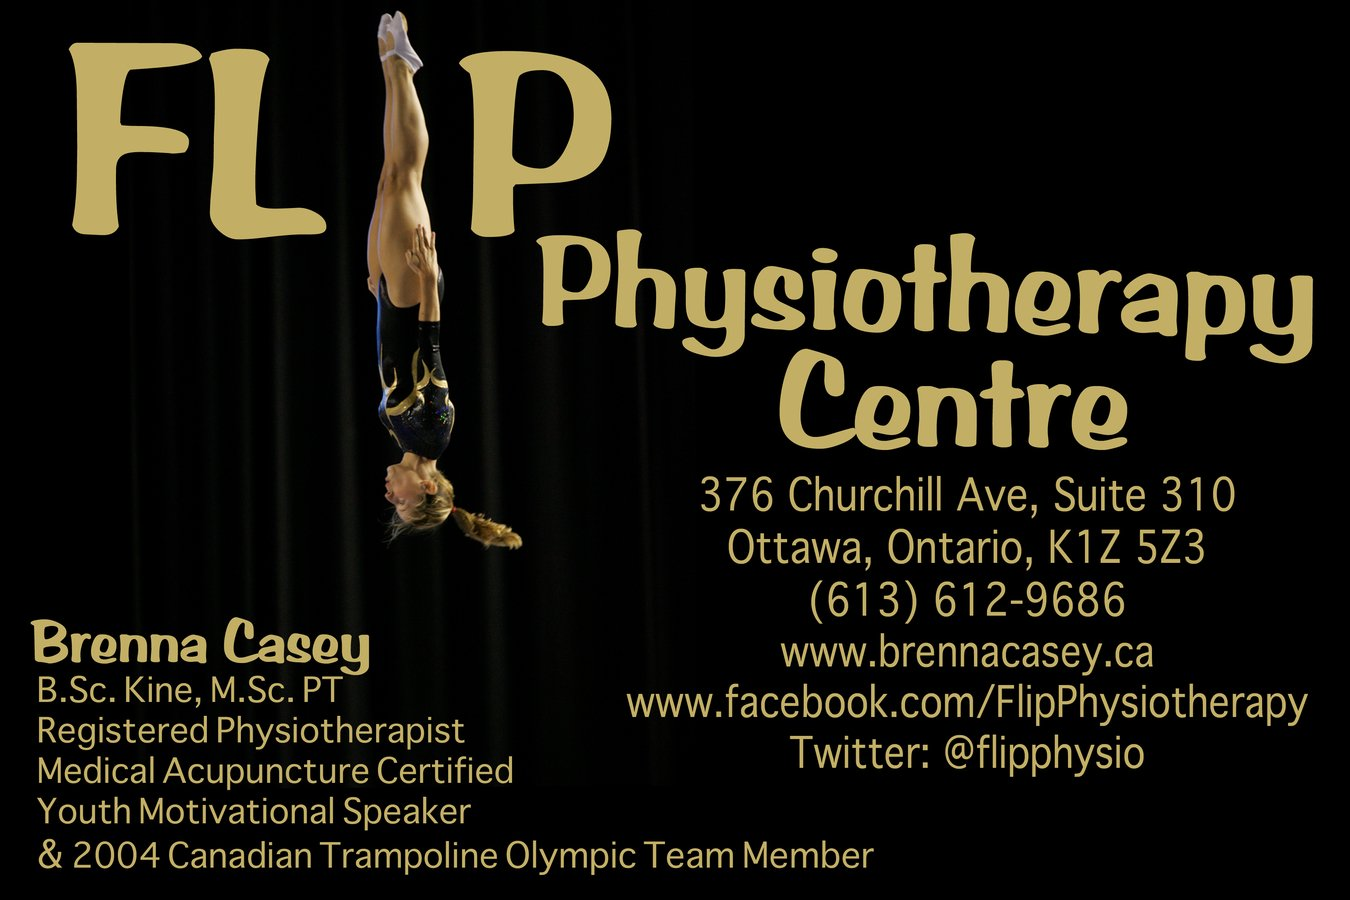 FL!P Physiotherapy Centre